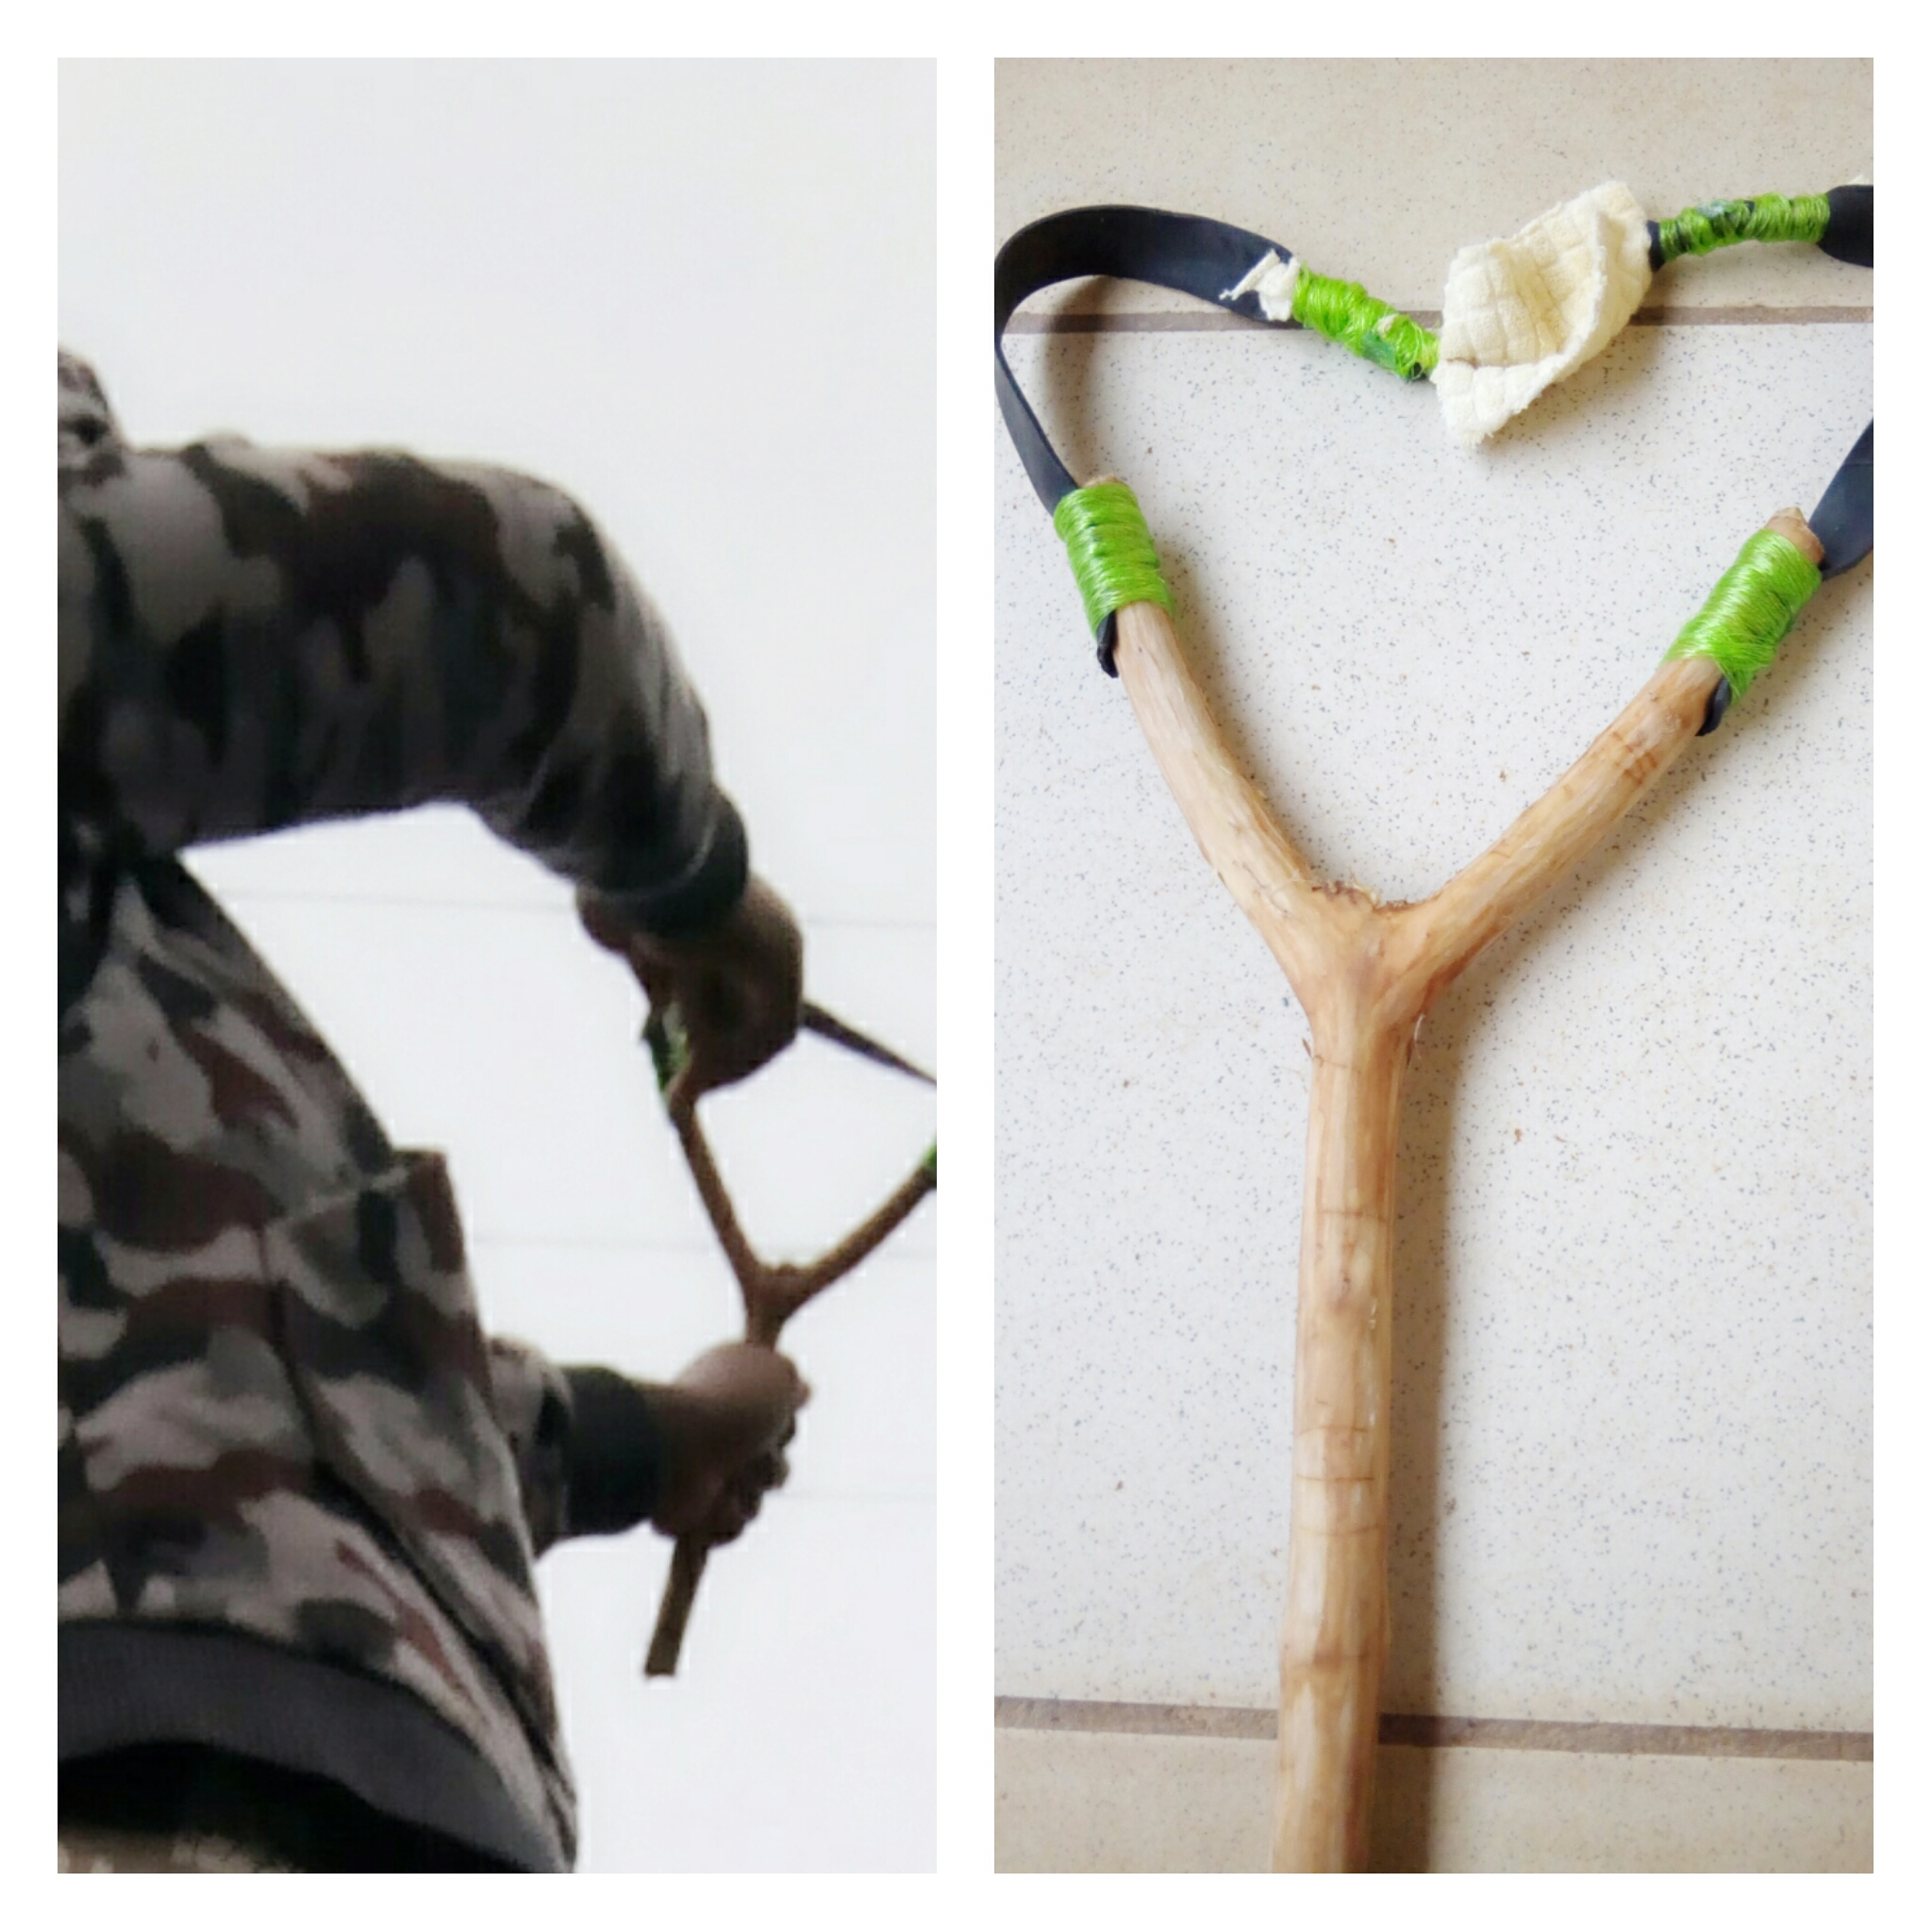 Picture of Homemade Slingshot by Reusing Old Tire Tubes